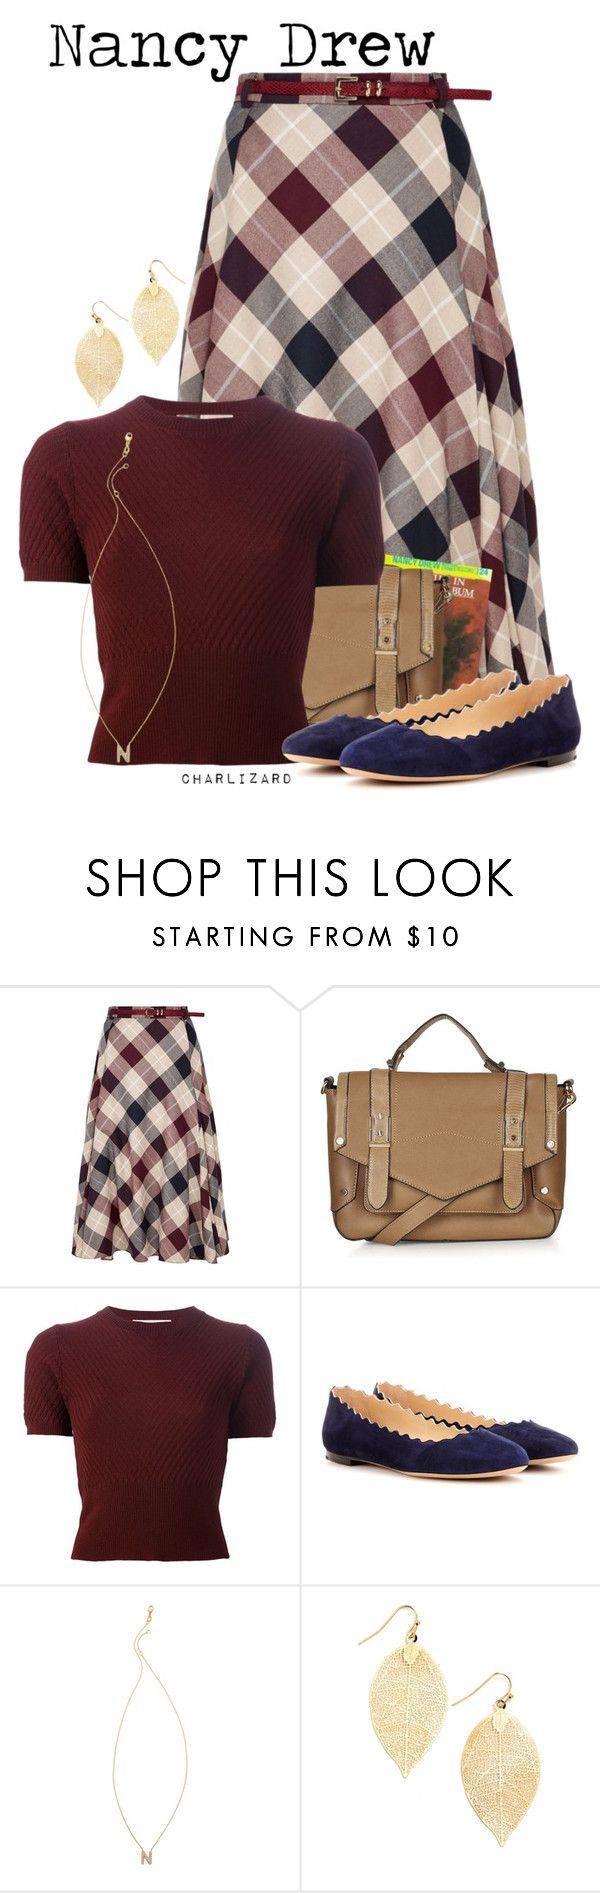 """Nancy Drew"" by charlizard ❤ liked on Polyvore featuring CC, Topshop, Marni, Chloé, Sarah Chloe, vintage, women's clothing, women, female and woman"